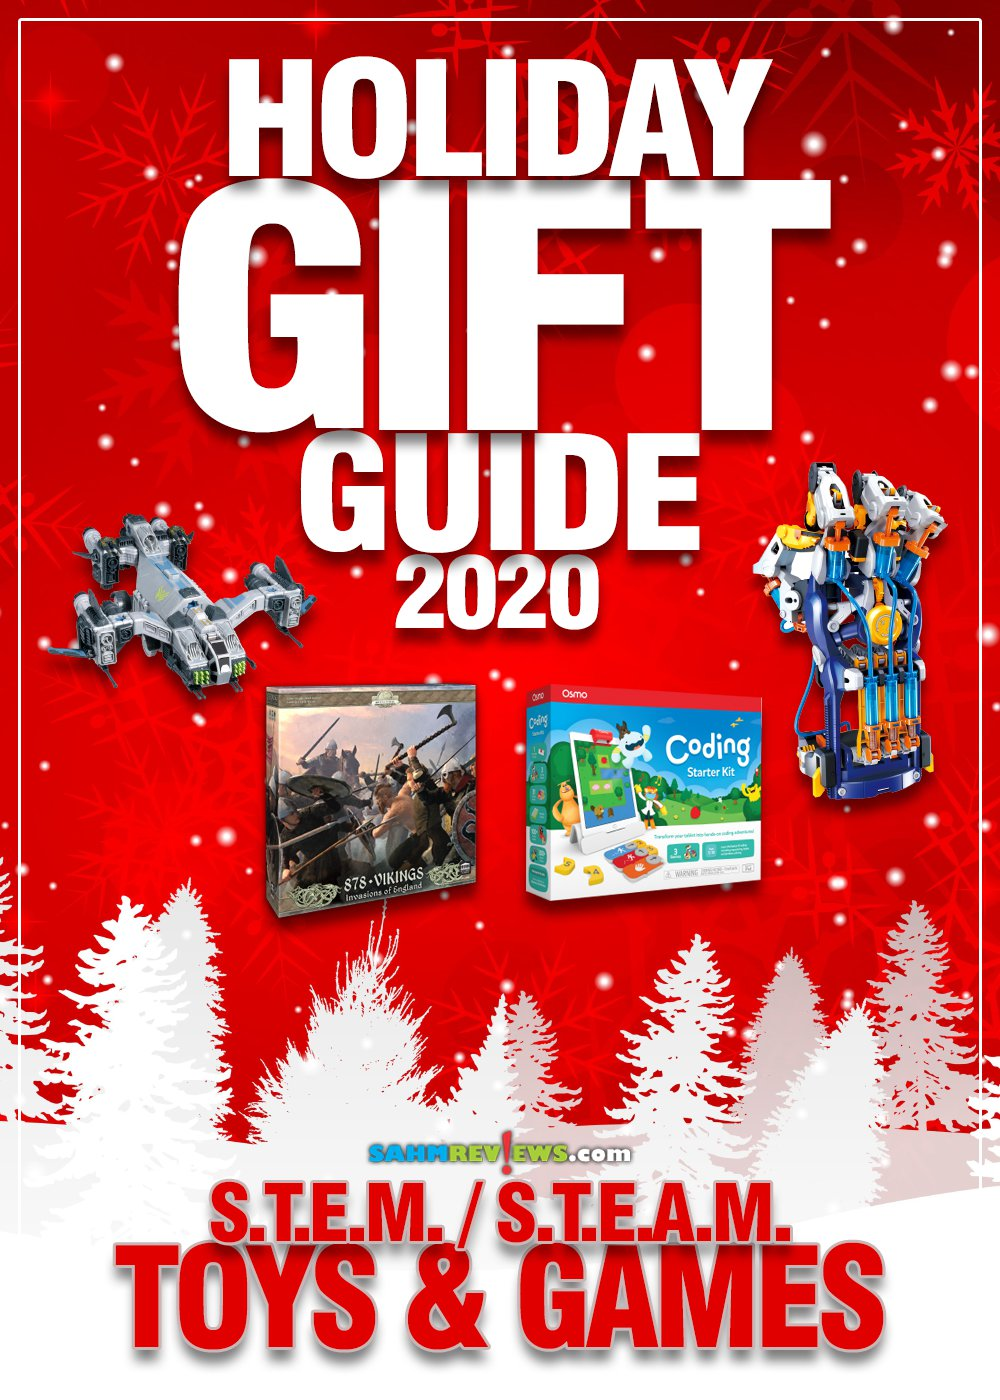 Toys and games don't have to be just about fun. They can also offer a learning experience. Like these items in our 2020 S.T.E.M. Holiday Gift Guide! - SahmReviews.com